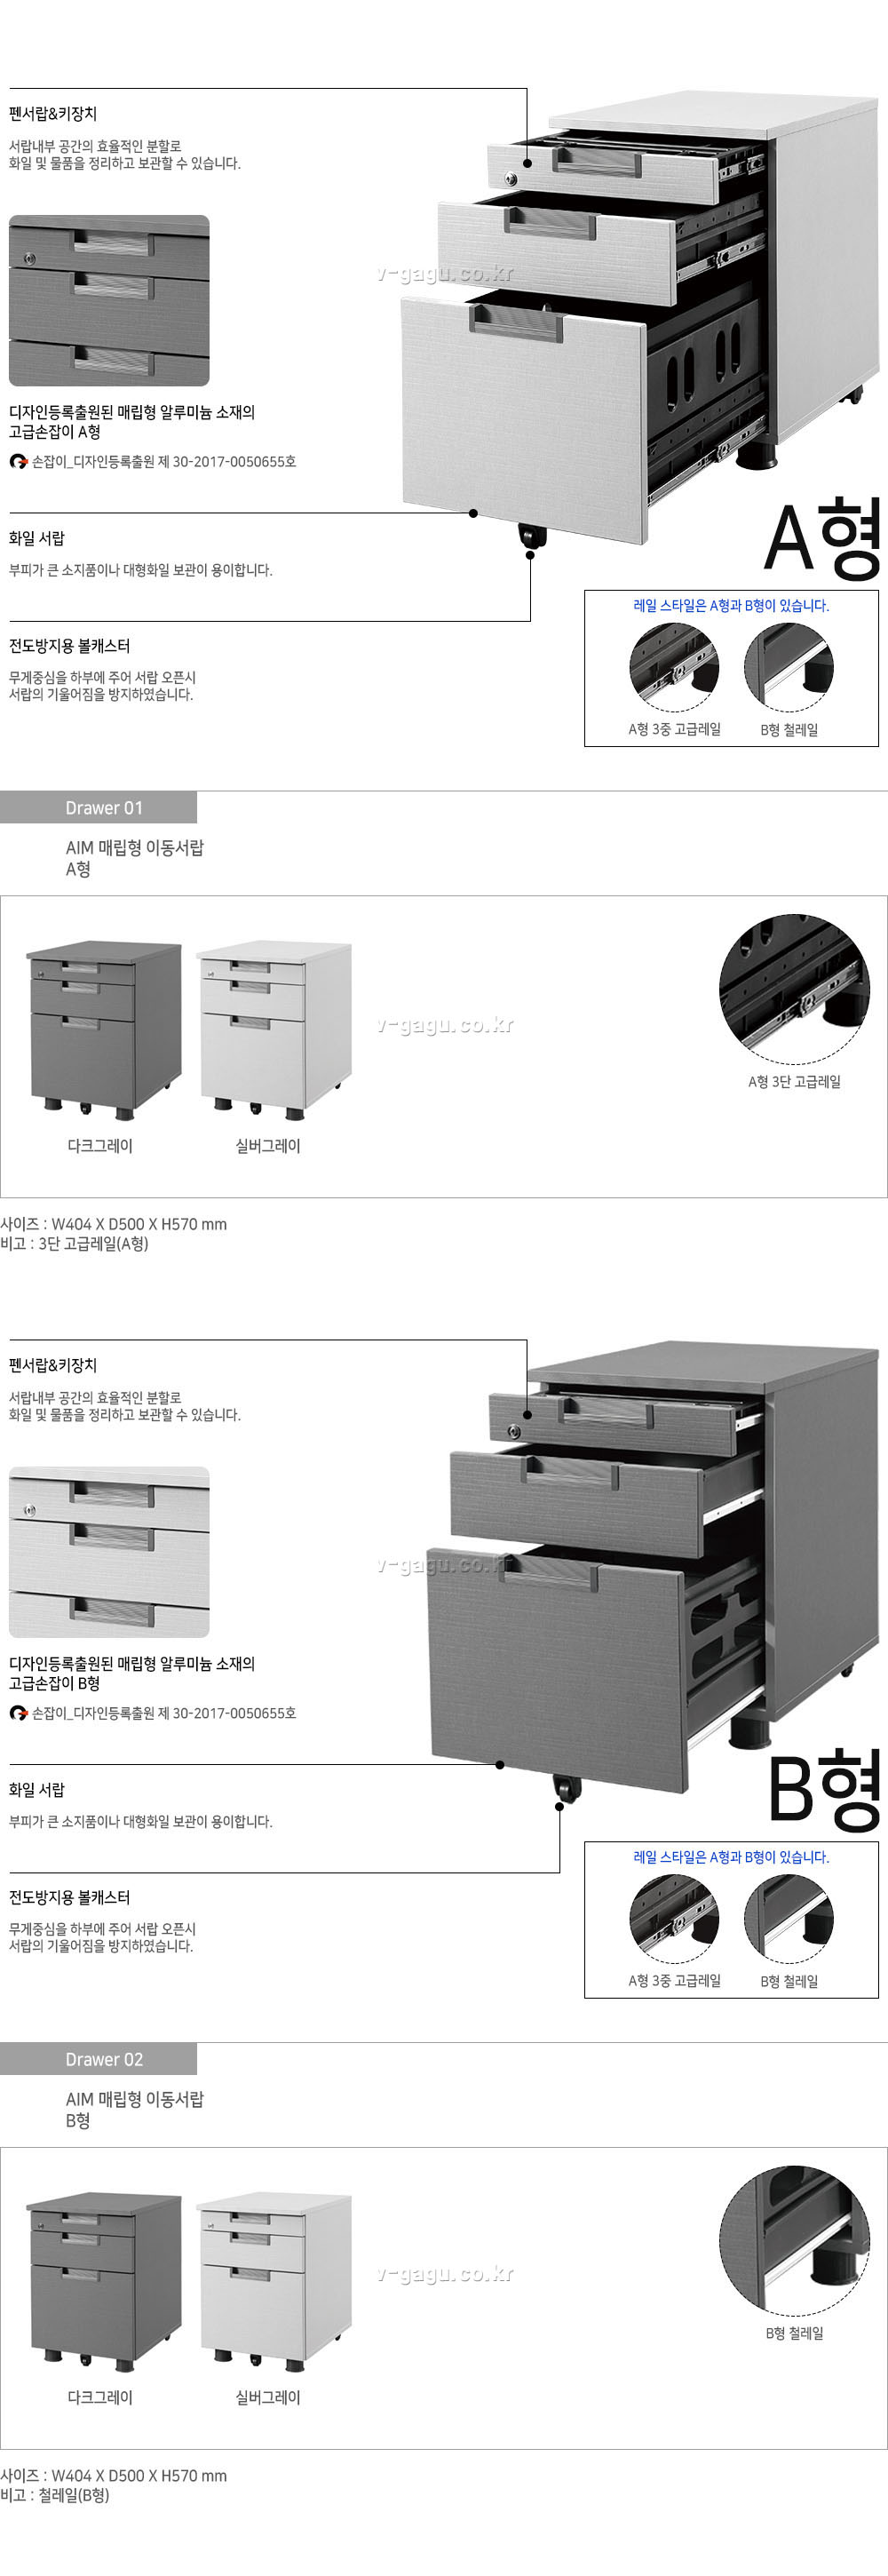 DHF-300A_drawer_hdgagu